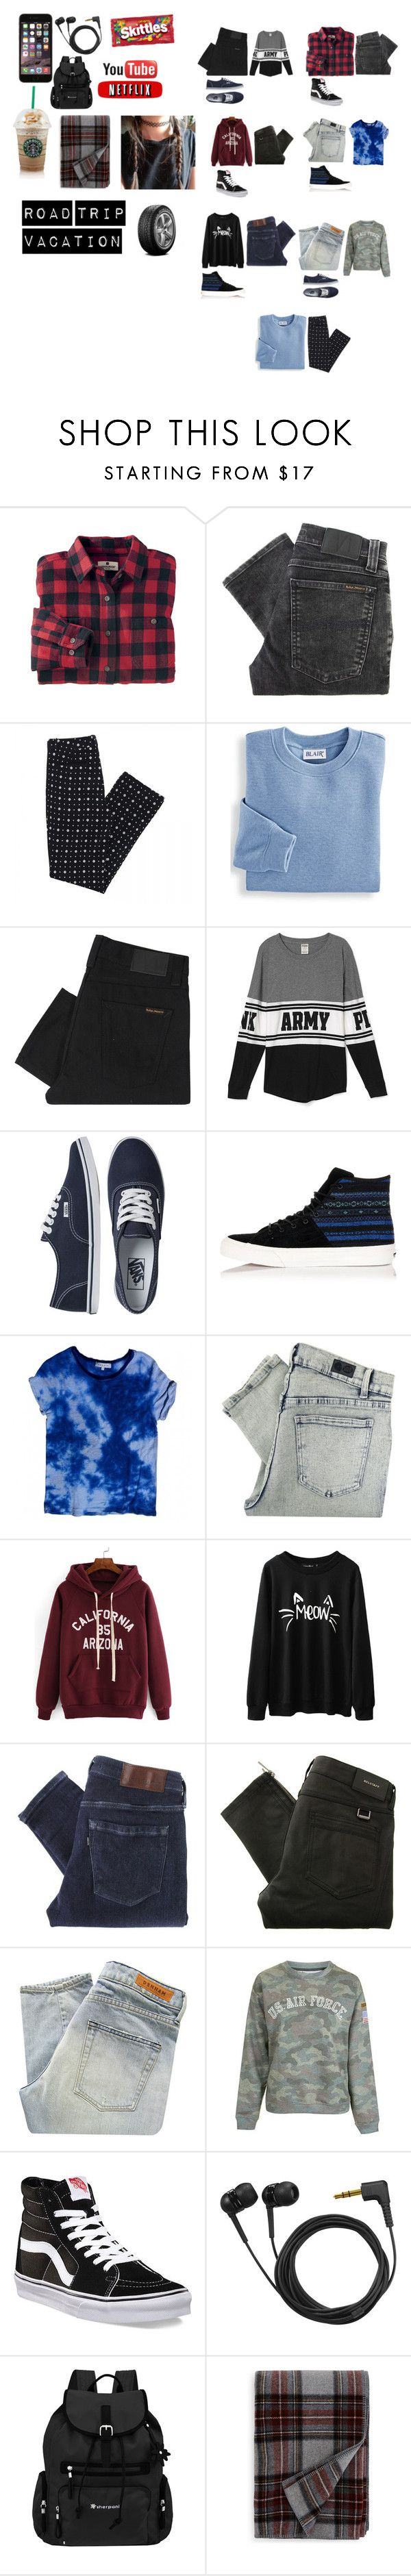 """road trip"" by jessiestone on Polyvore featuring Woolrich, Nudie Jeans Co., Blair, Vans, Sandro, Cheap Monday, Levi's Made & Crafted, Belstaff, Denham and Topshop"